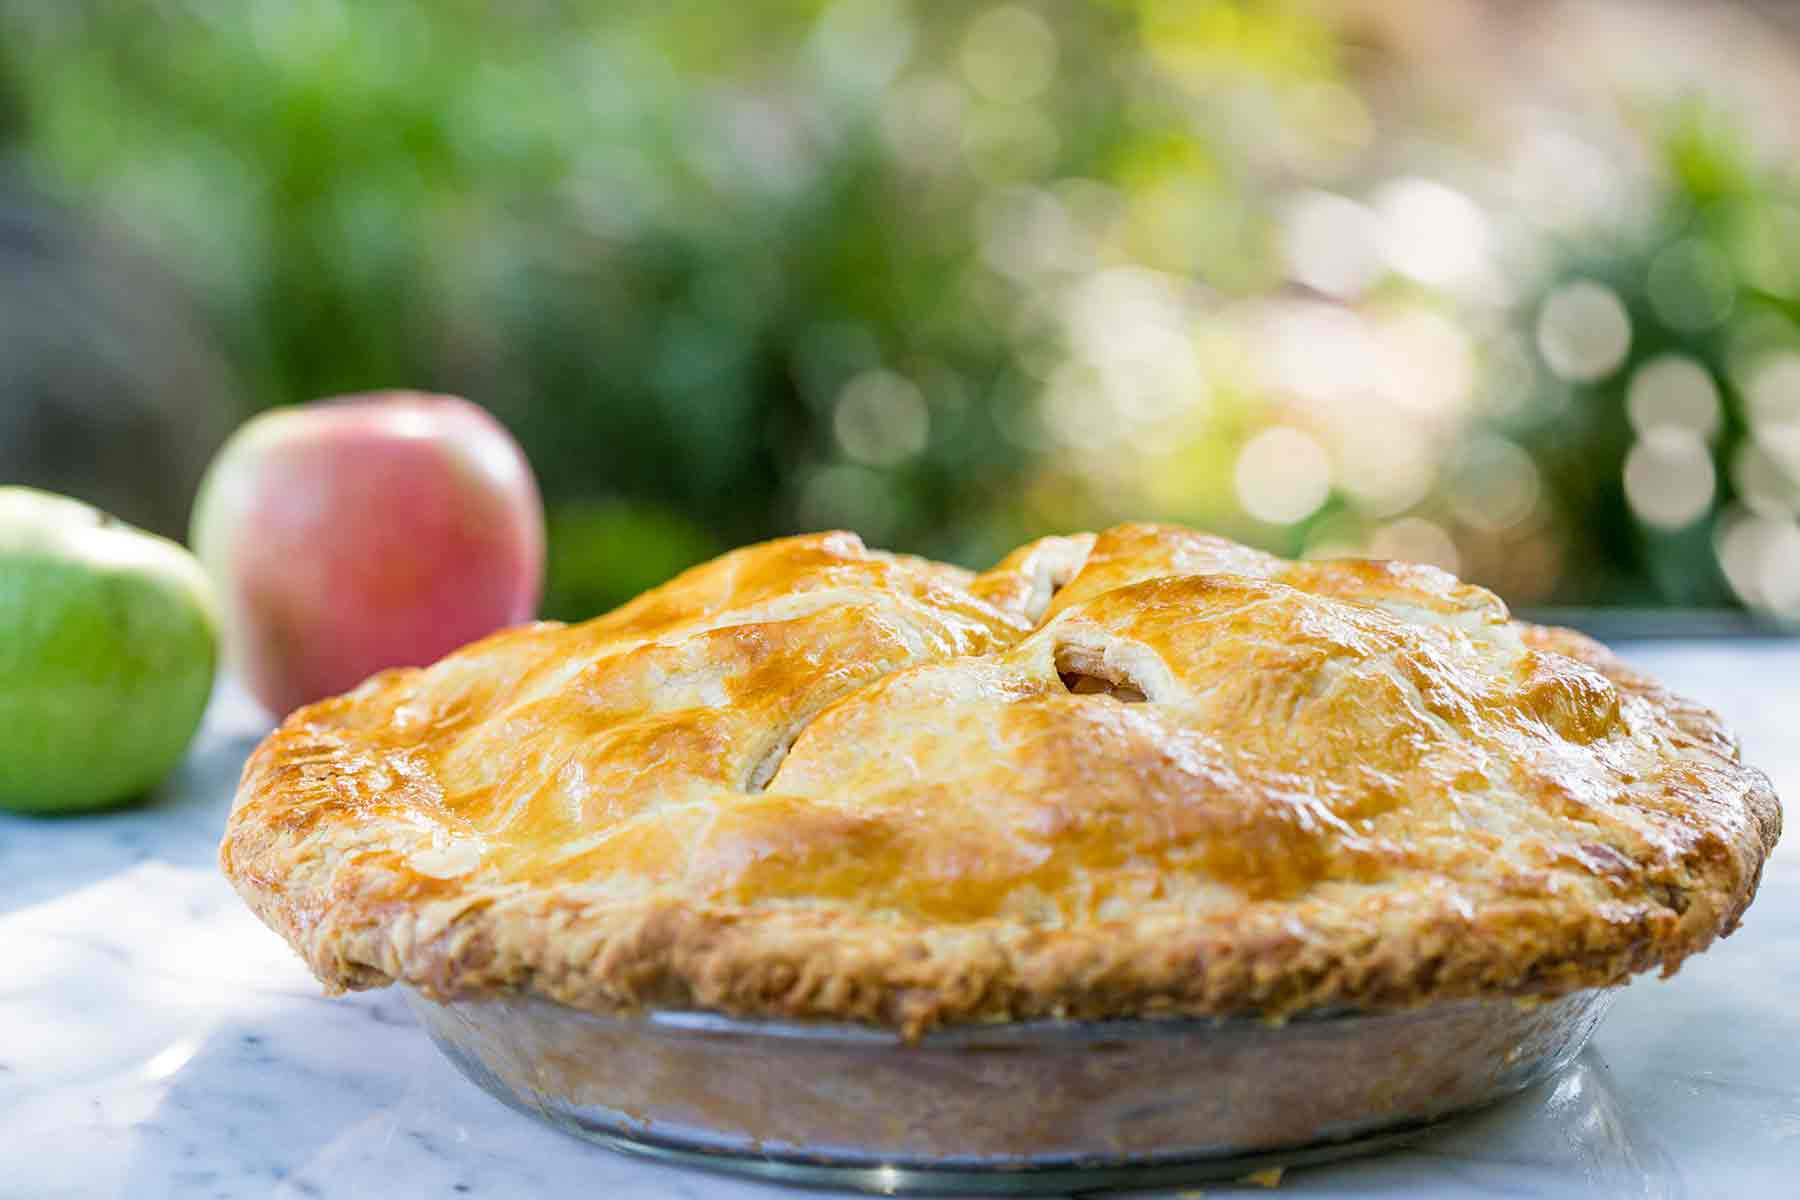 Homemade Apple Pie ready to be served